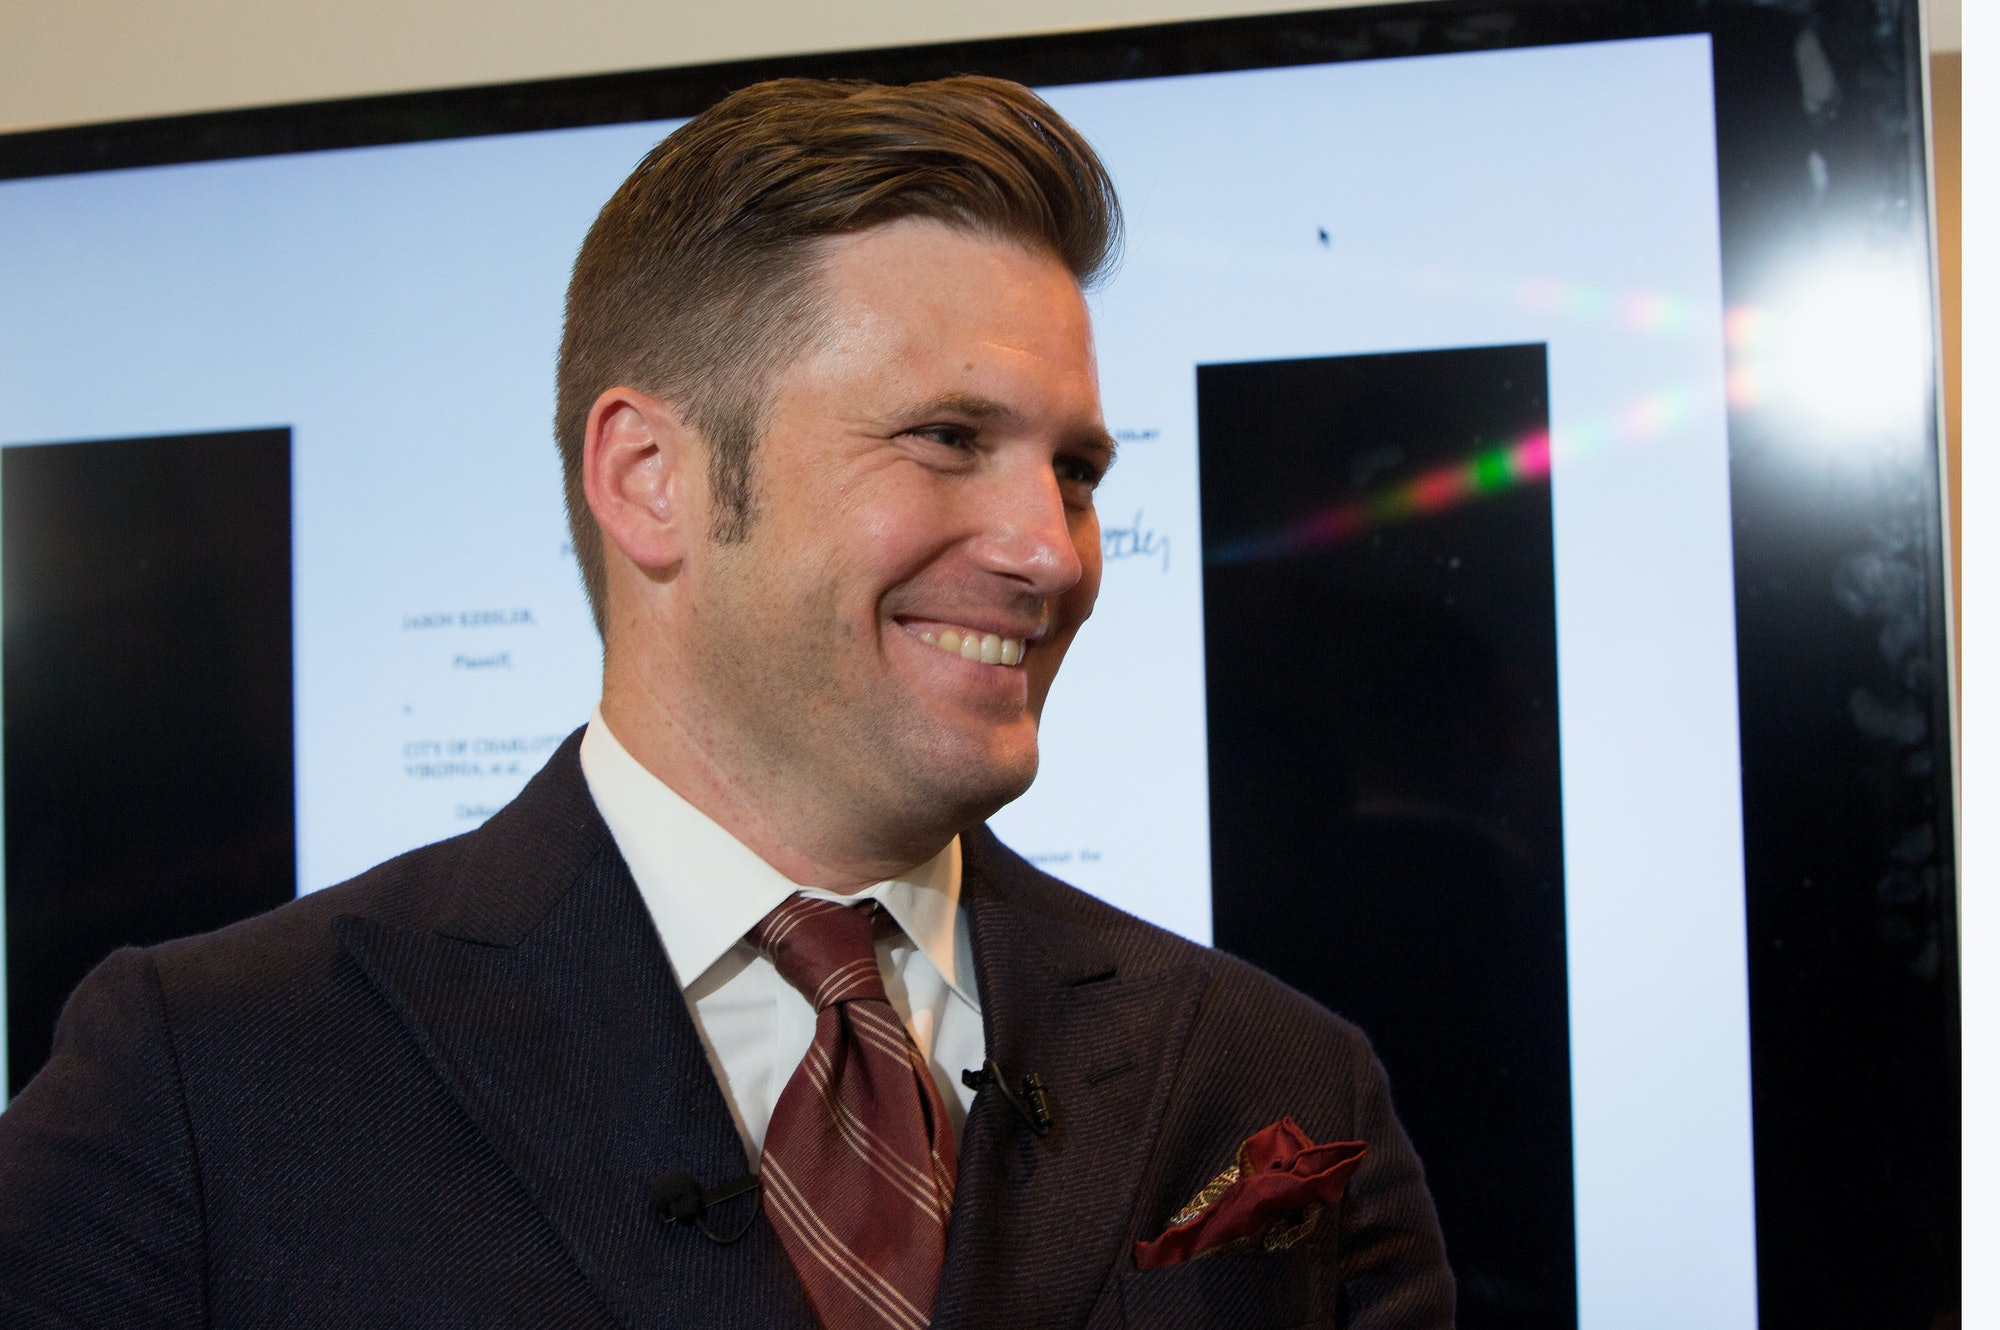 ALEXANDRIA, VA - AUGUST 14: White nationalist Richard Spencer speaks to select media in his office space on August 14, 2017 in Alexandria, Virginia. Spencer, head of the National Policy Institute and self-described creator of the term 'alt-right,' announced his intention to speak at rallies at Texas A&M University and the University of Florida in September. Spencer attended this past weekend's violent protests at the University of Virginia that left at least three people dead and dozens injured. (Photo by Tasos Katopodis/Getty Images)